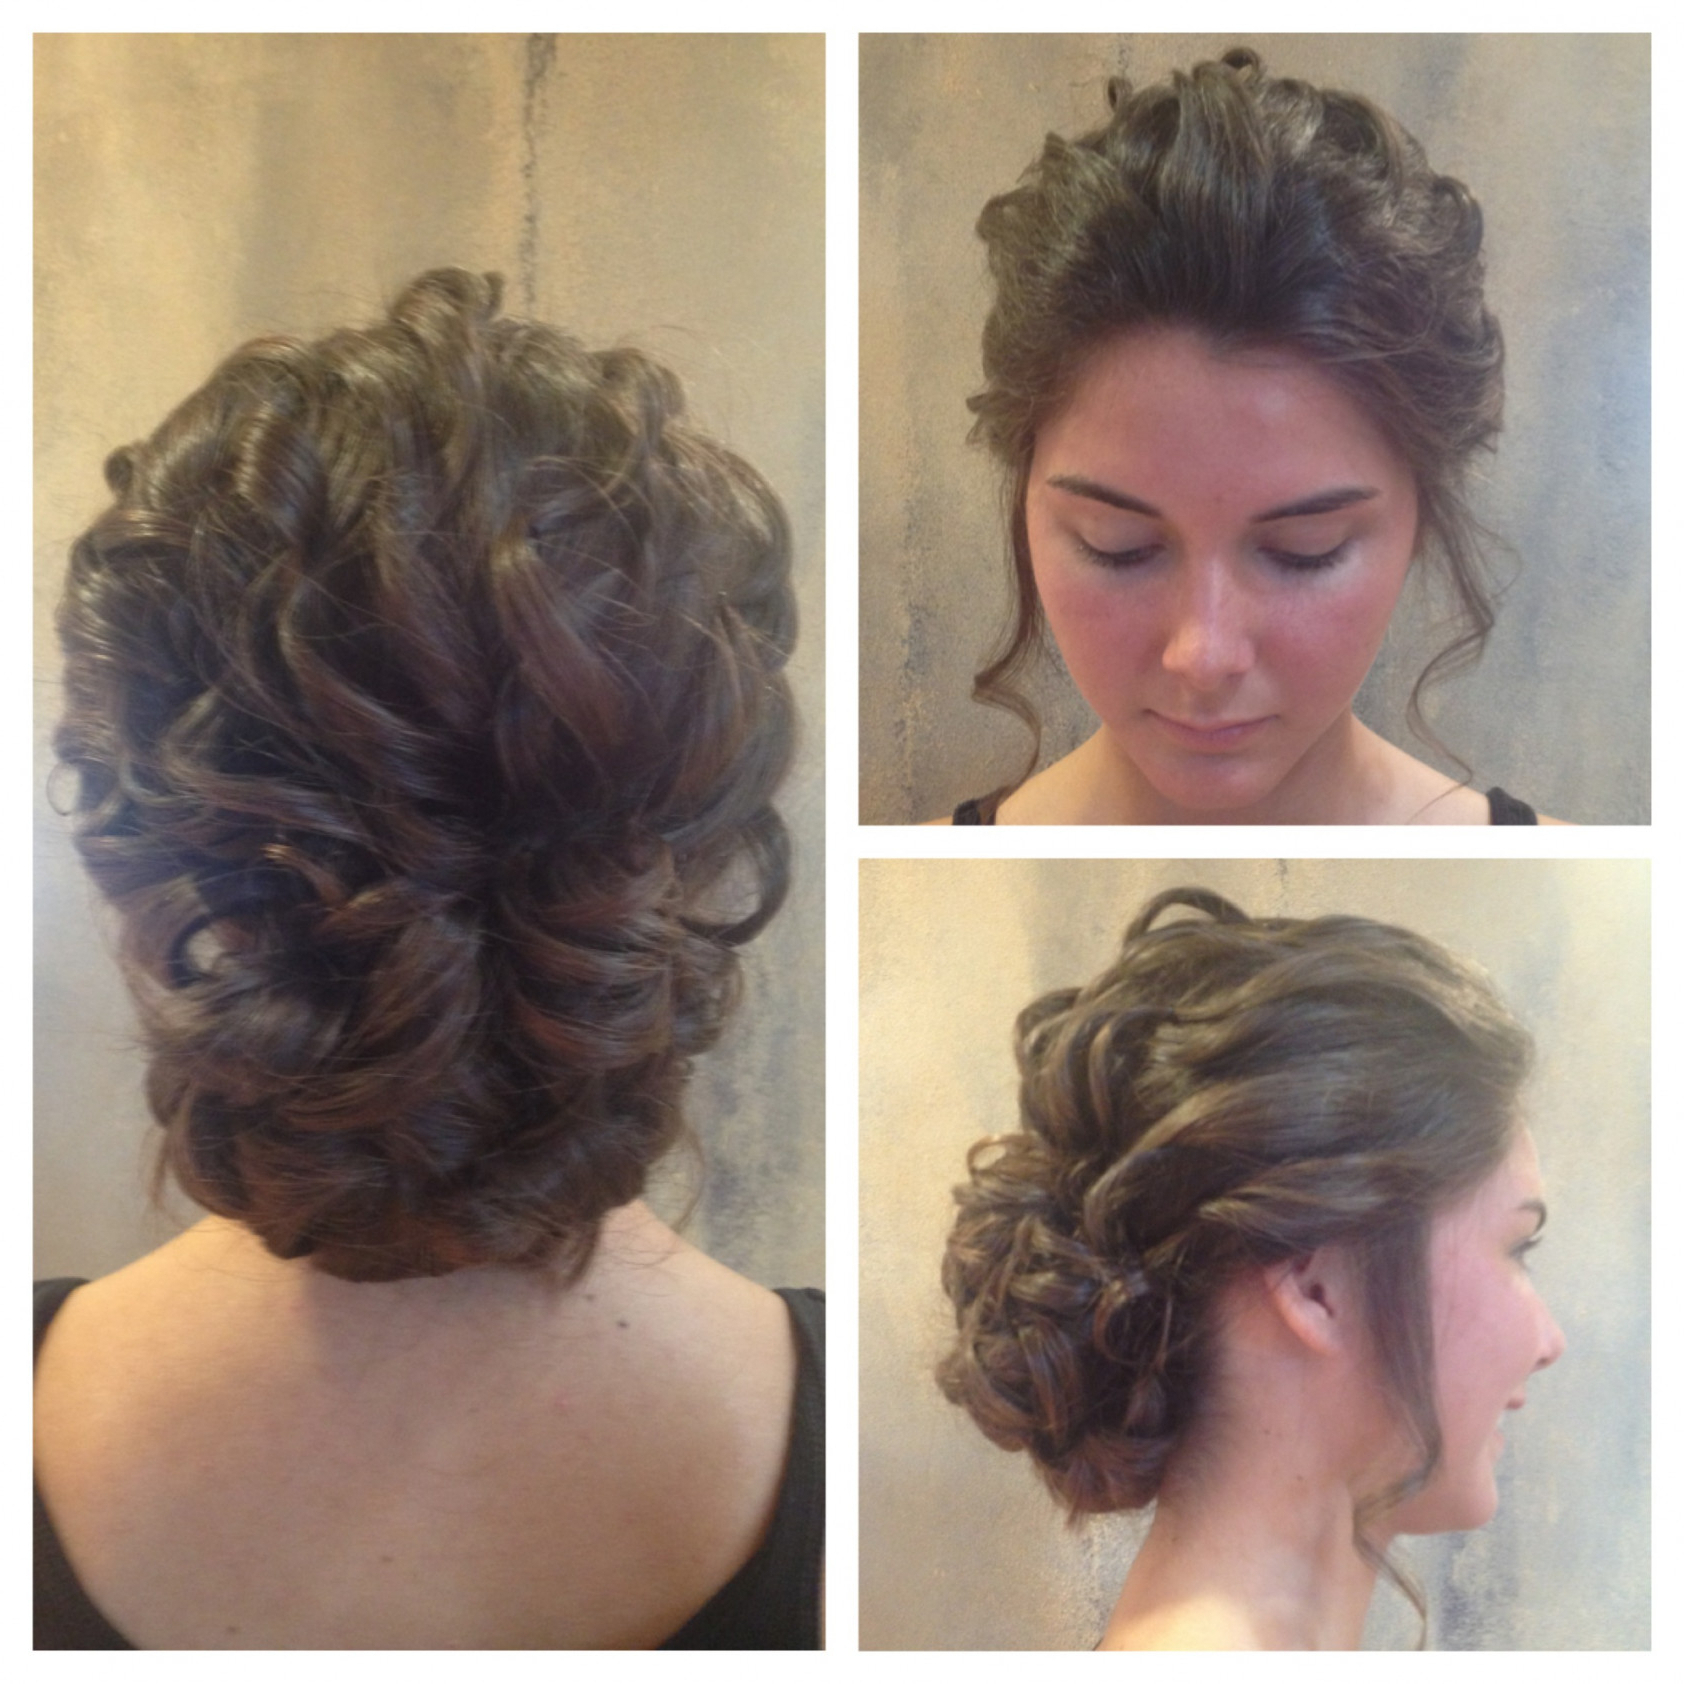 Useful Curly Bun Hairstyles Wedding For Updokatie Loose Curls Intended For Famous Loose Curls Hairstyles For Wedding (View 16 of 20)